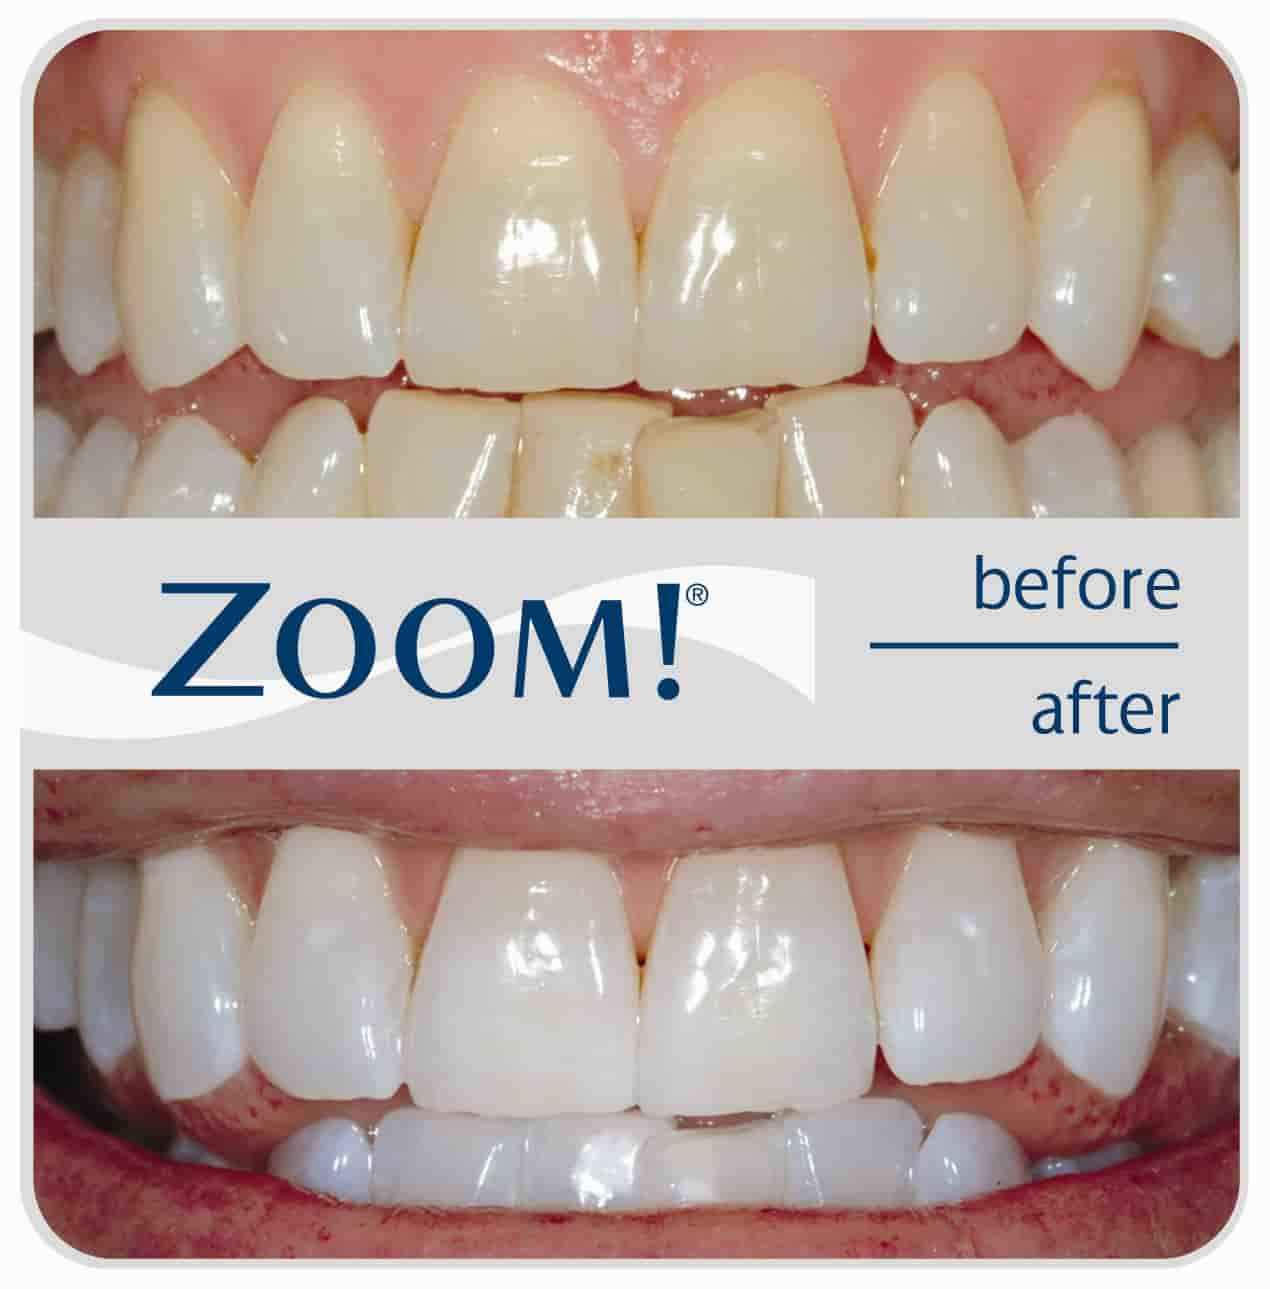 z00m-befor-after-teethwhitening-doha-qatar